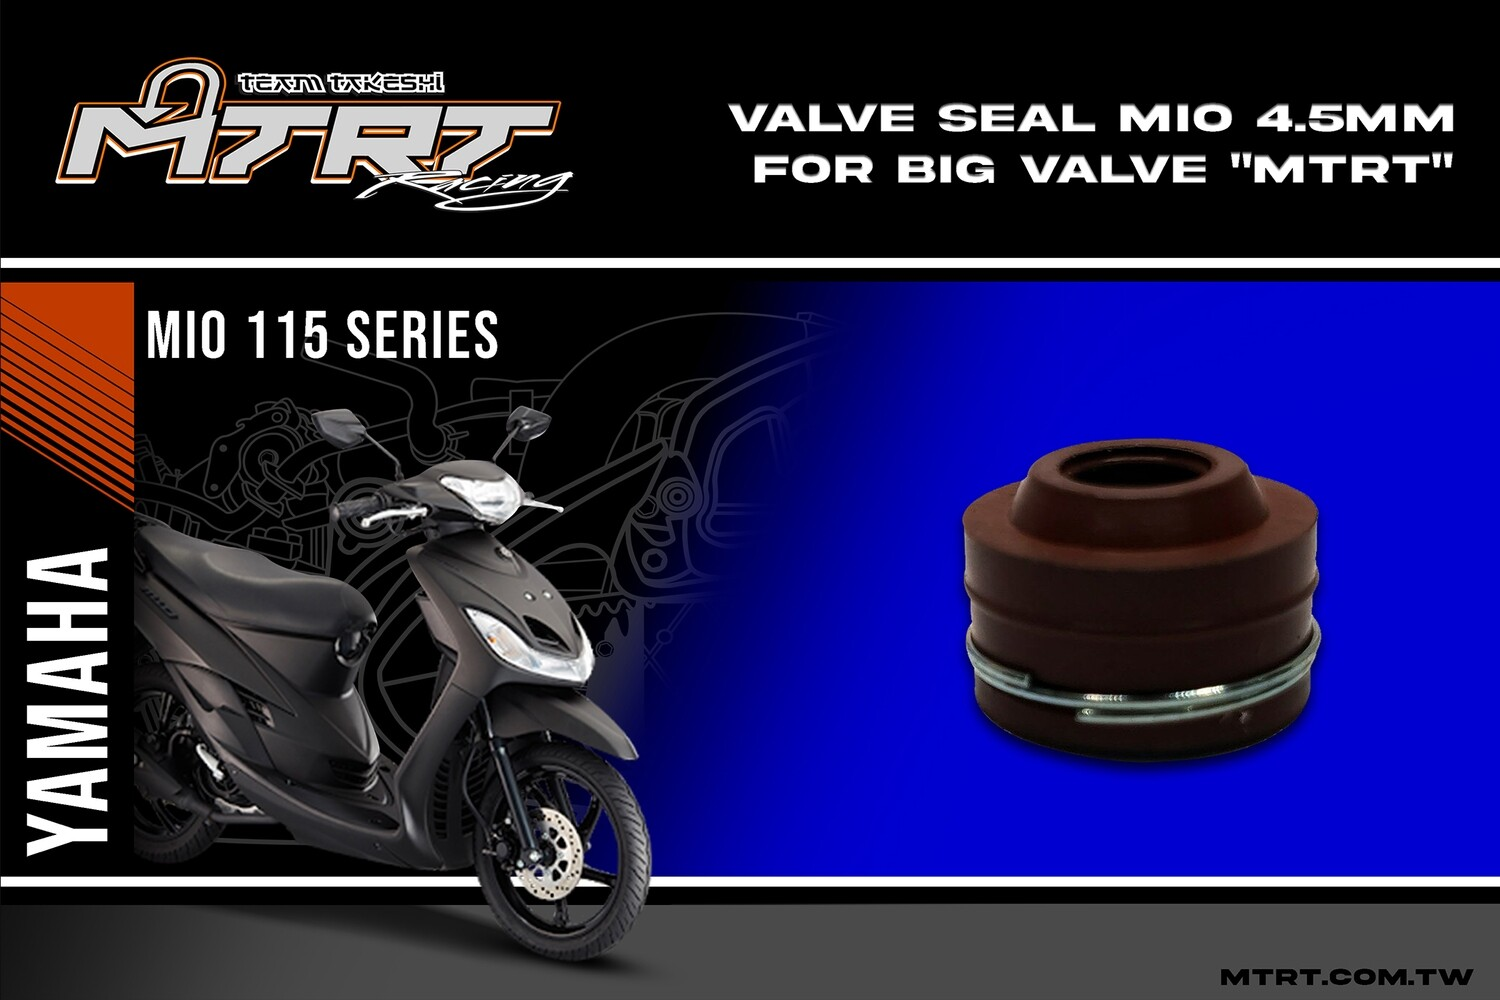 VALVE SEAL MIO 4.5mm  for big valve MTRT